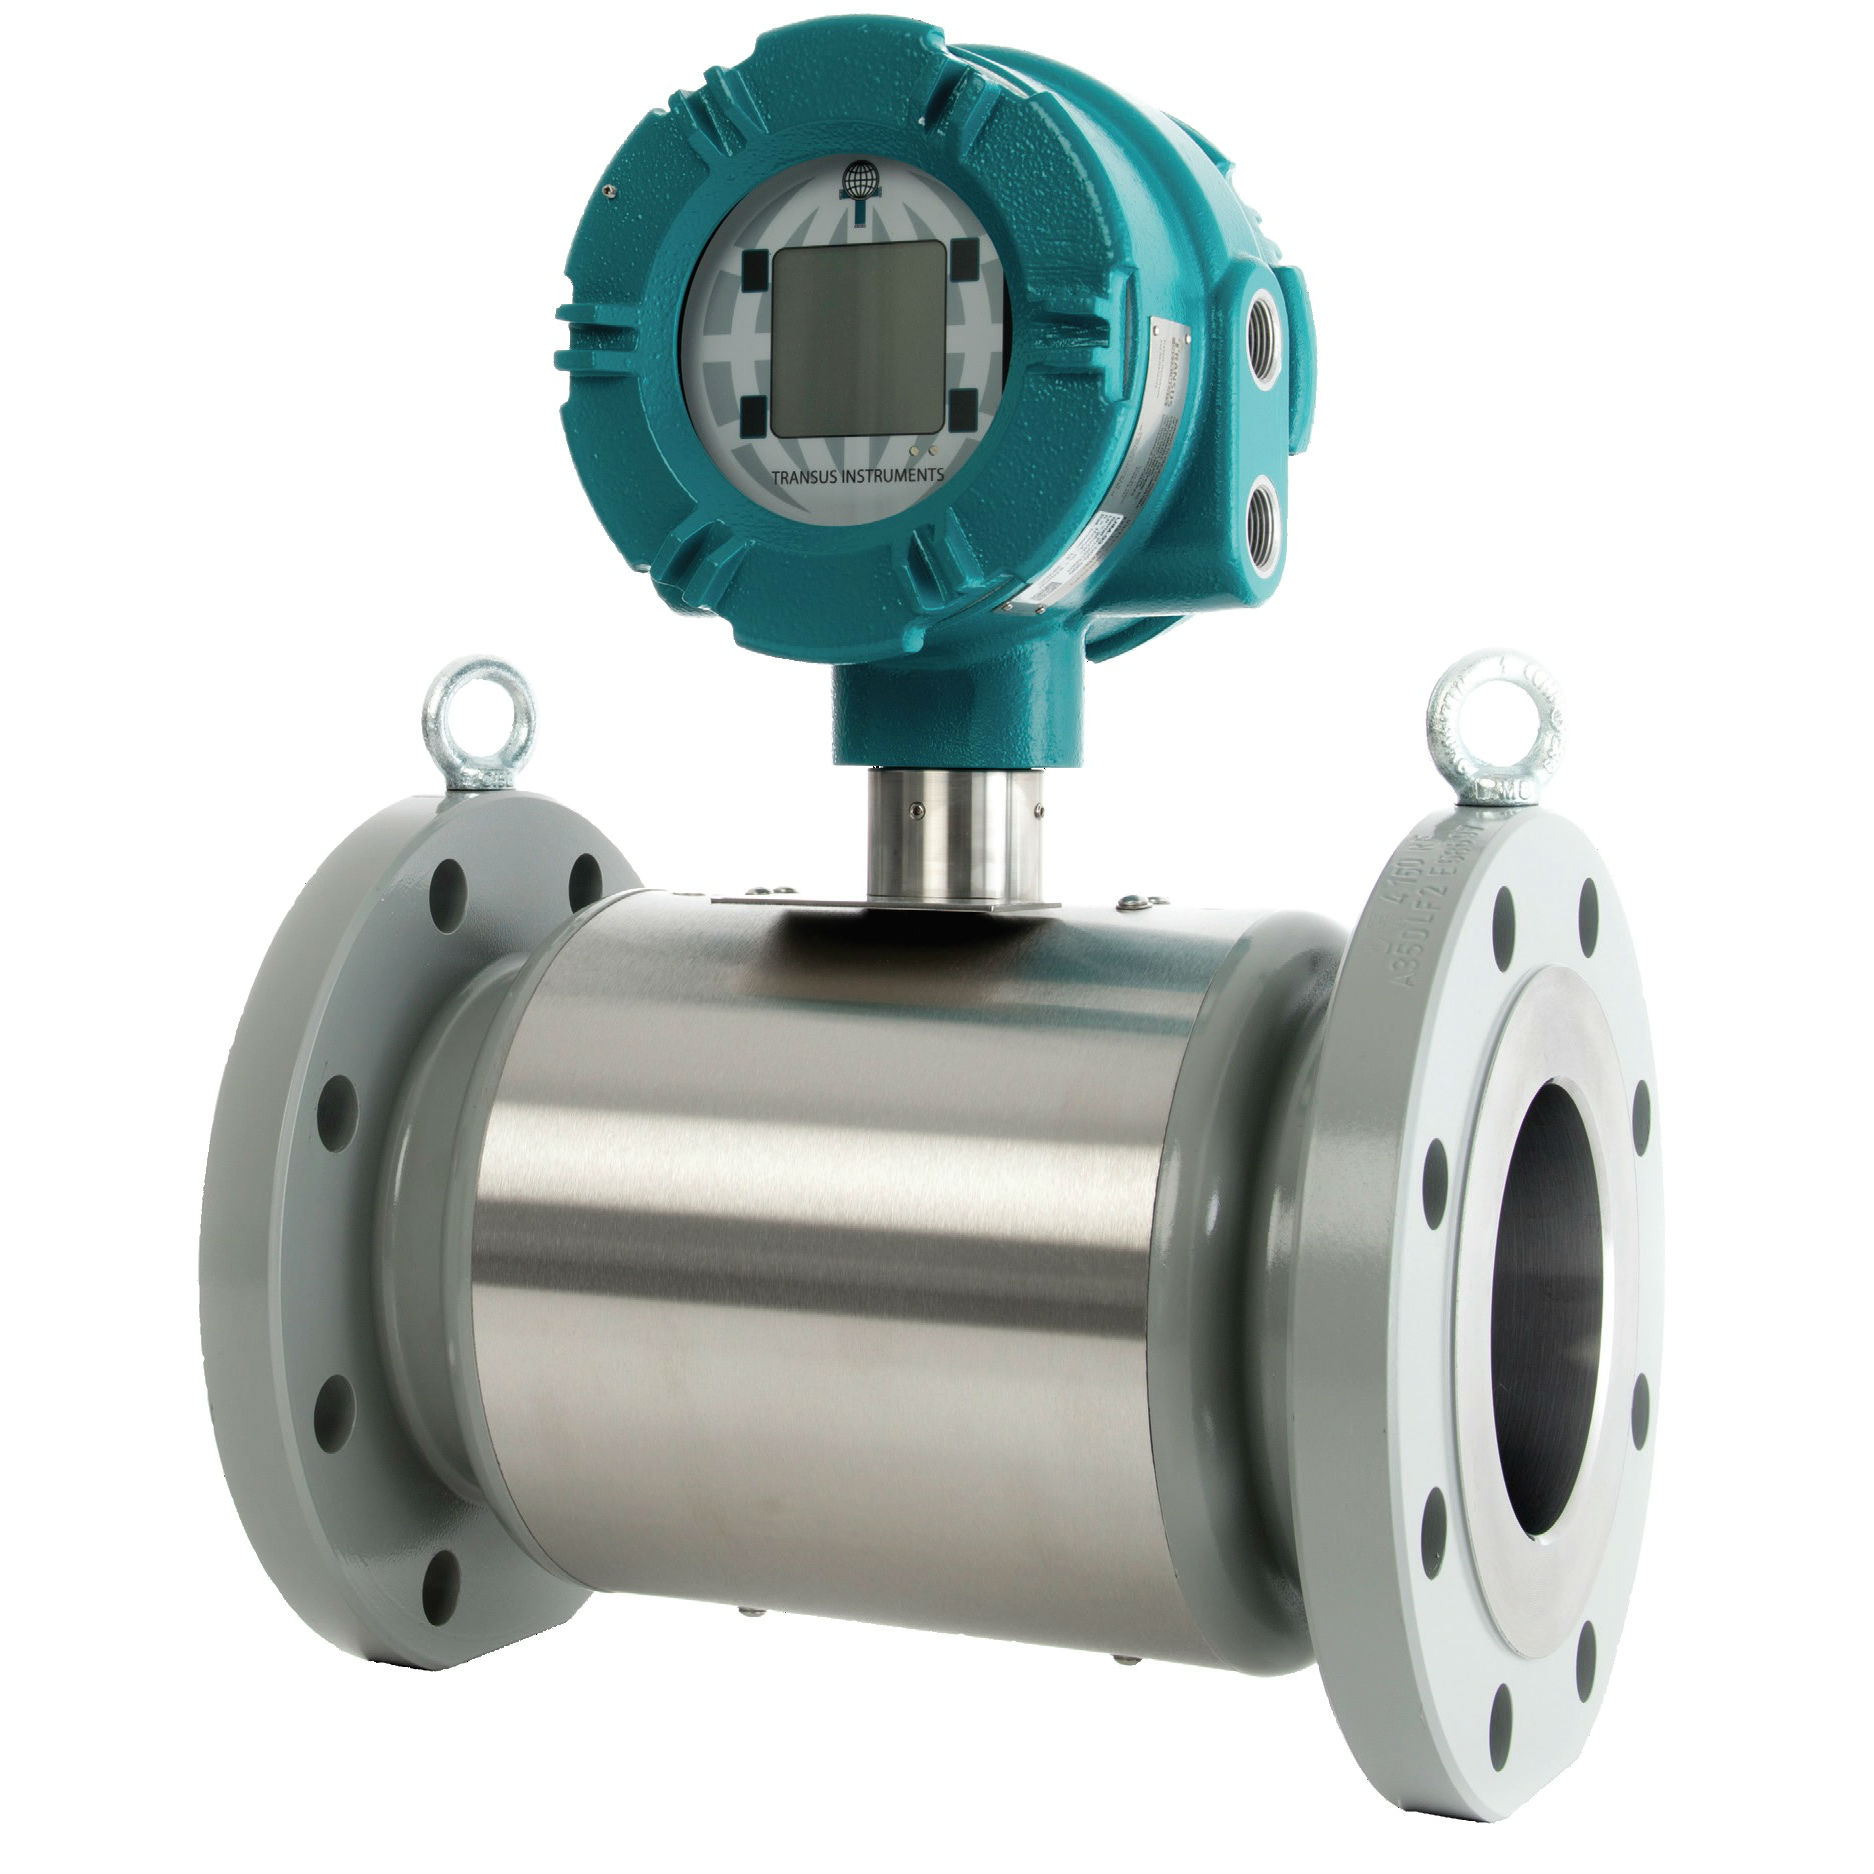 Transus Ultrasonic Gas Uim 4f Series Flow Meter Procon Transmitter Fm 45w With Valve Flowmeter